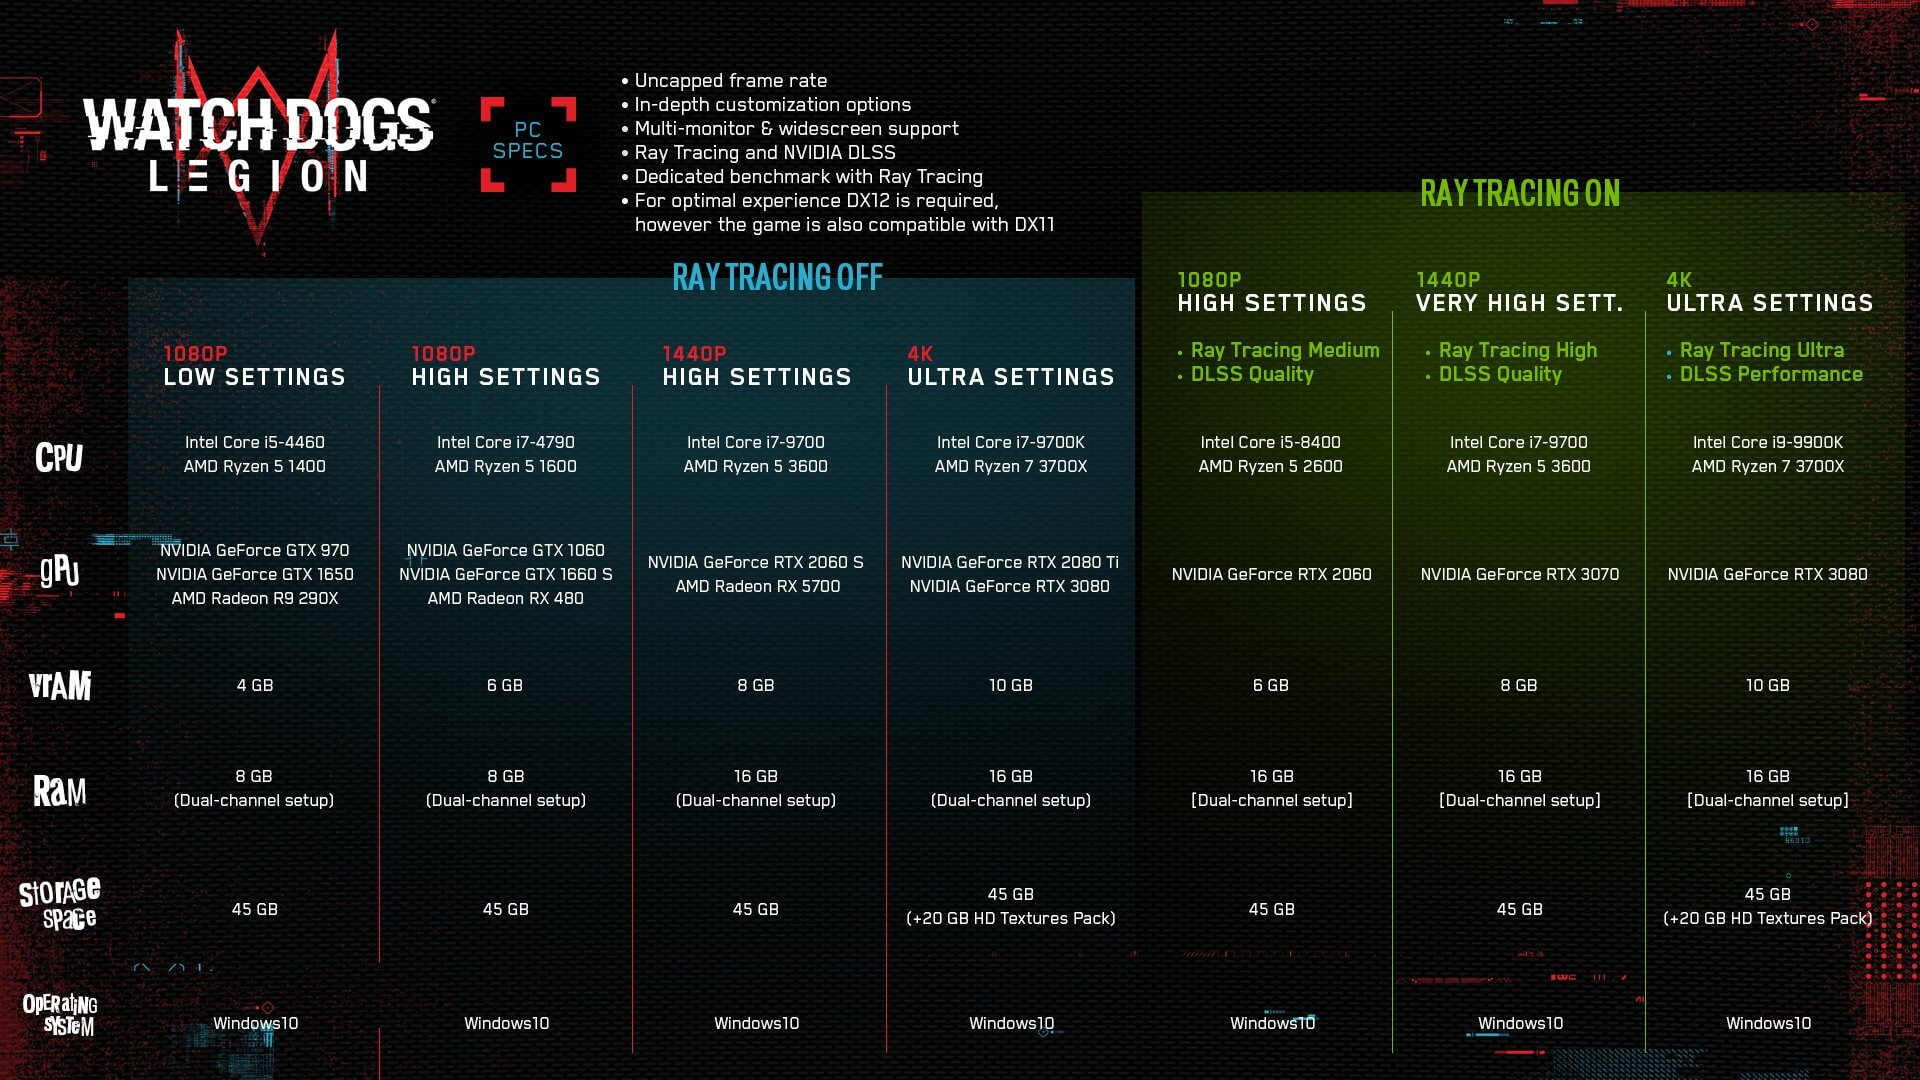 Watch Dogs Legion RTX PC Requirements